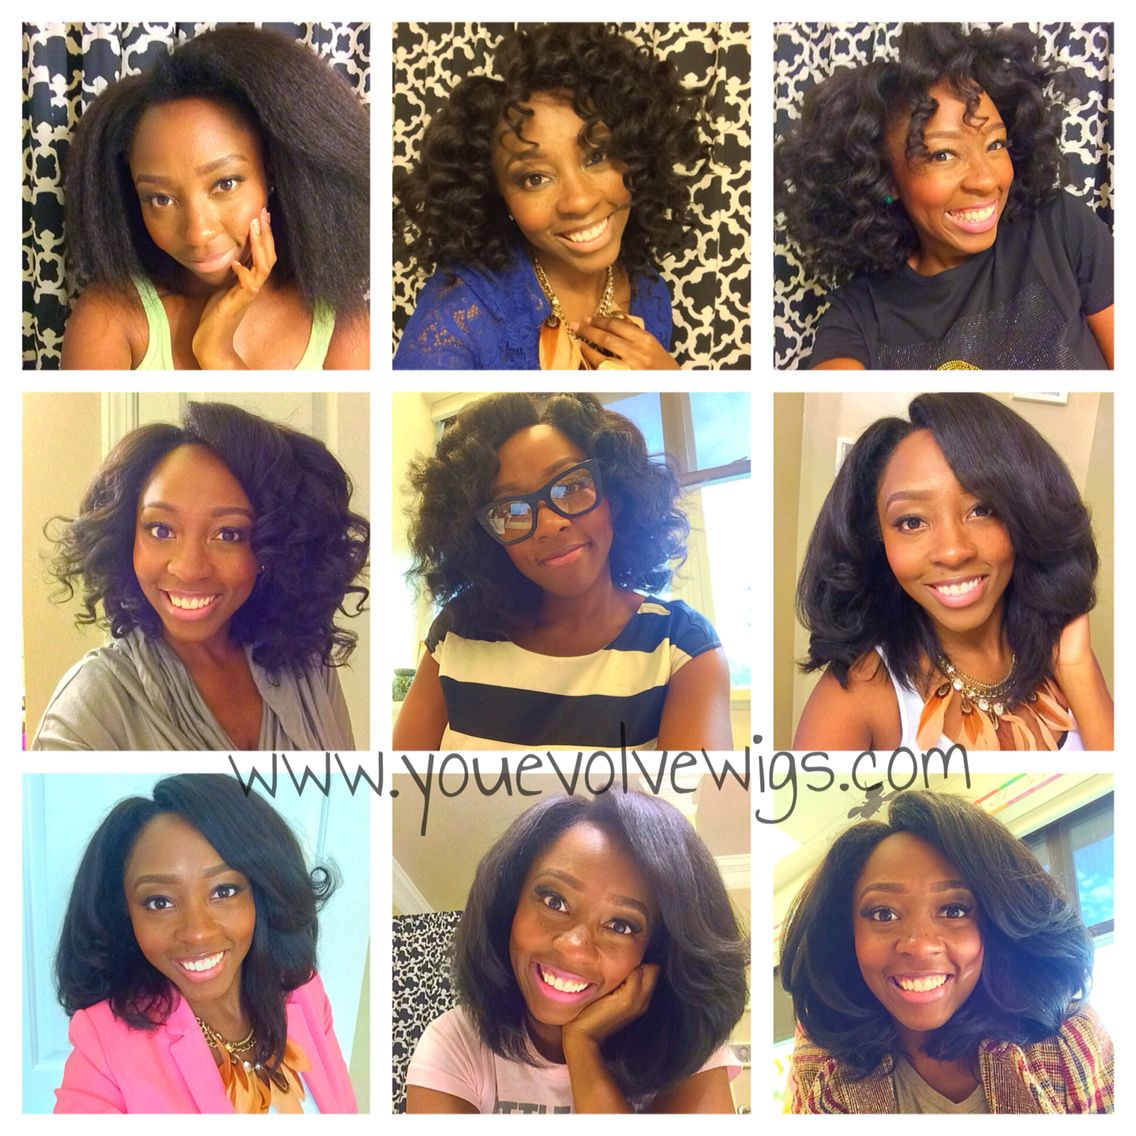 The Versatility Of Onyc Fro Out Hair Need A Custom Wig Order Yours Today Www Youevolvewigs Purchase This On Site Under Tab